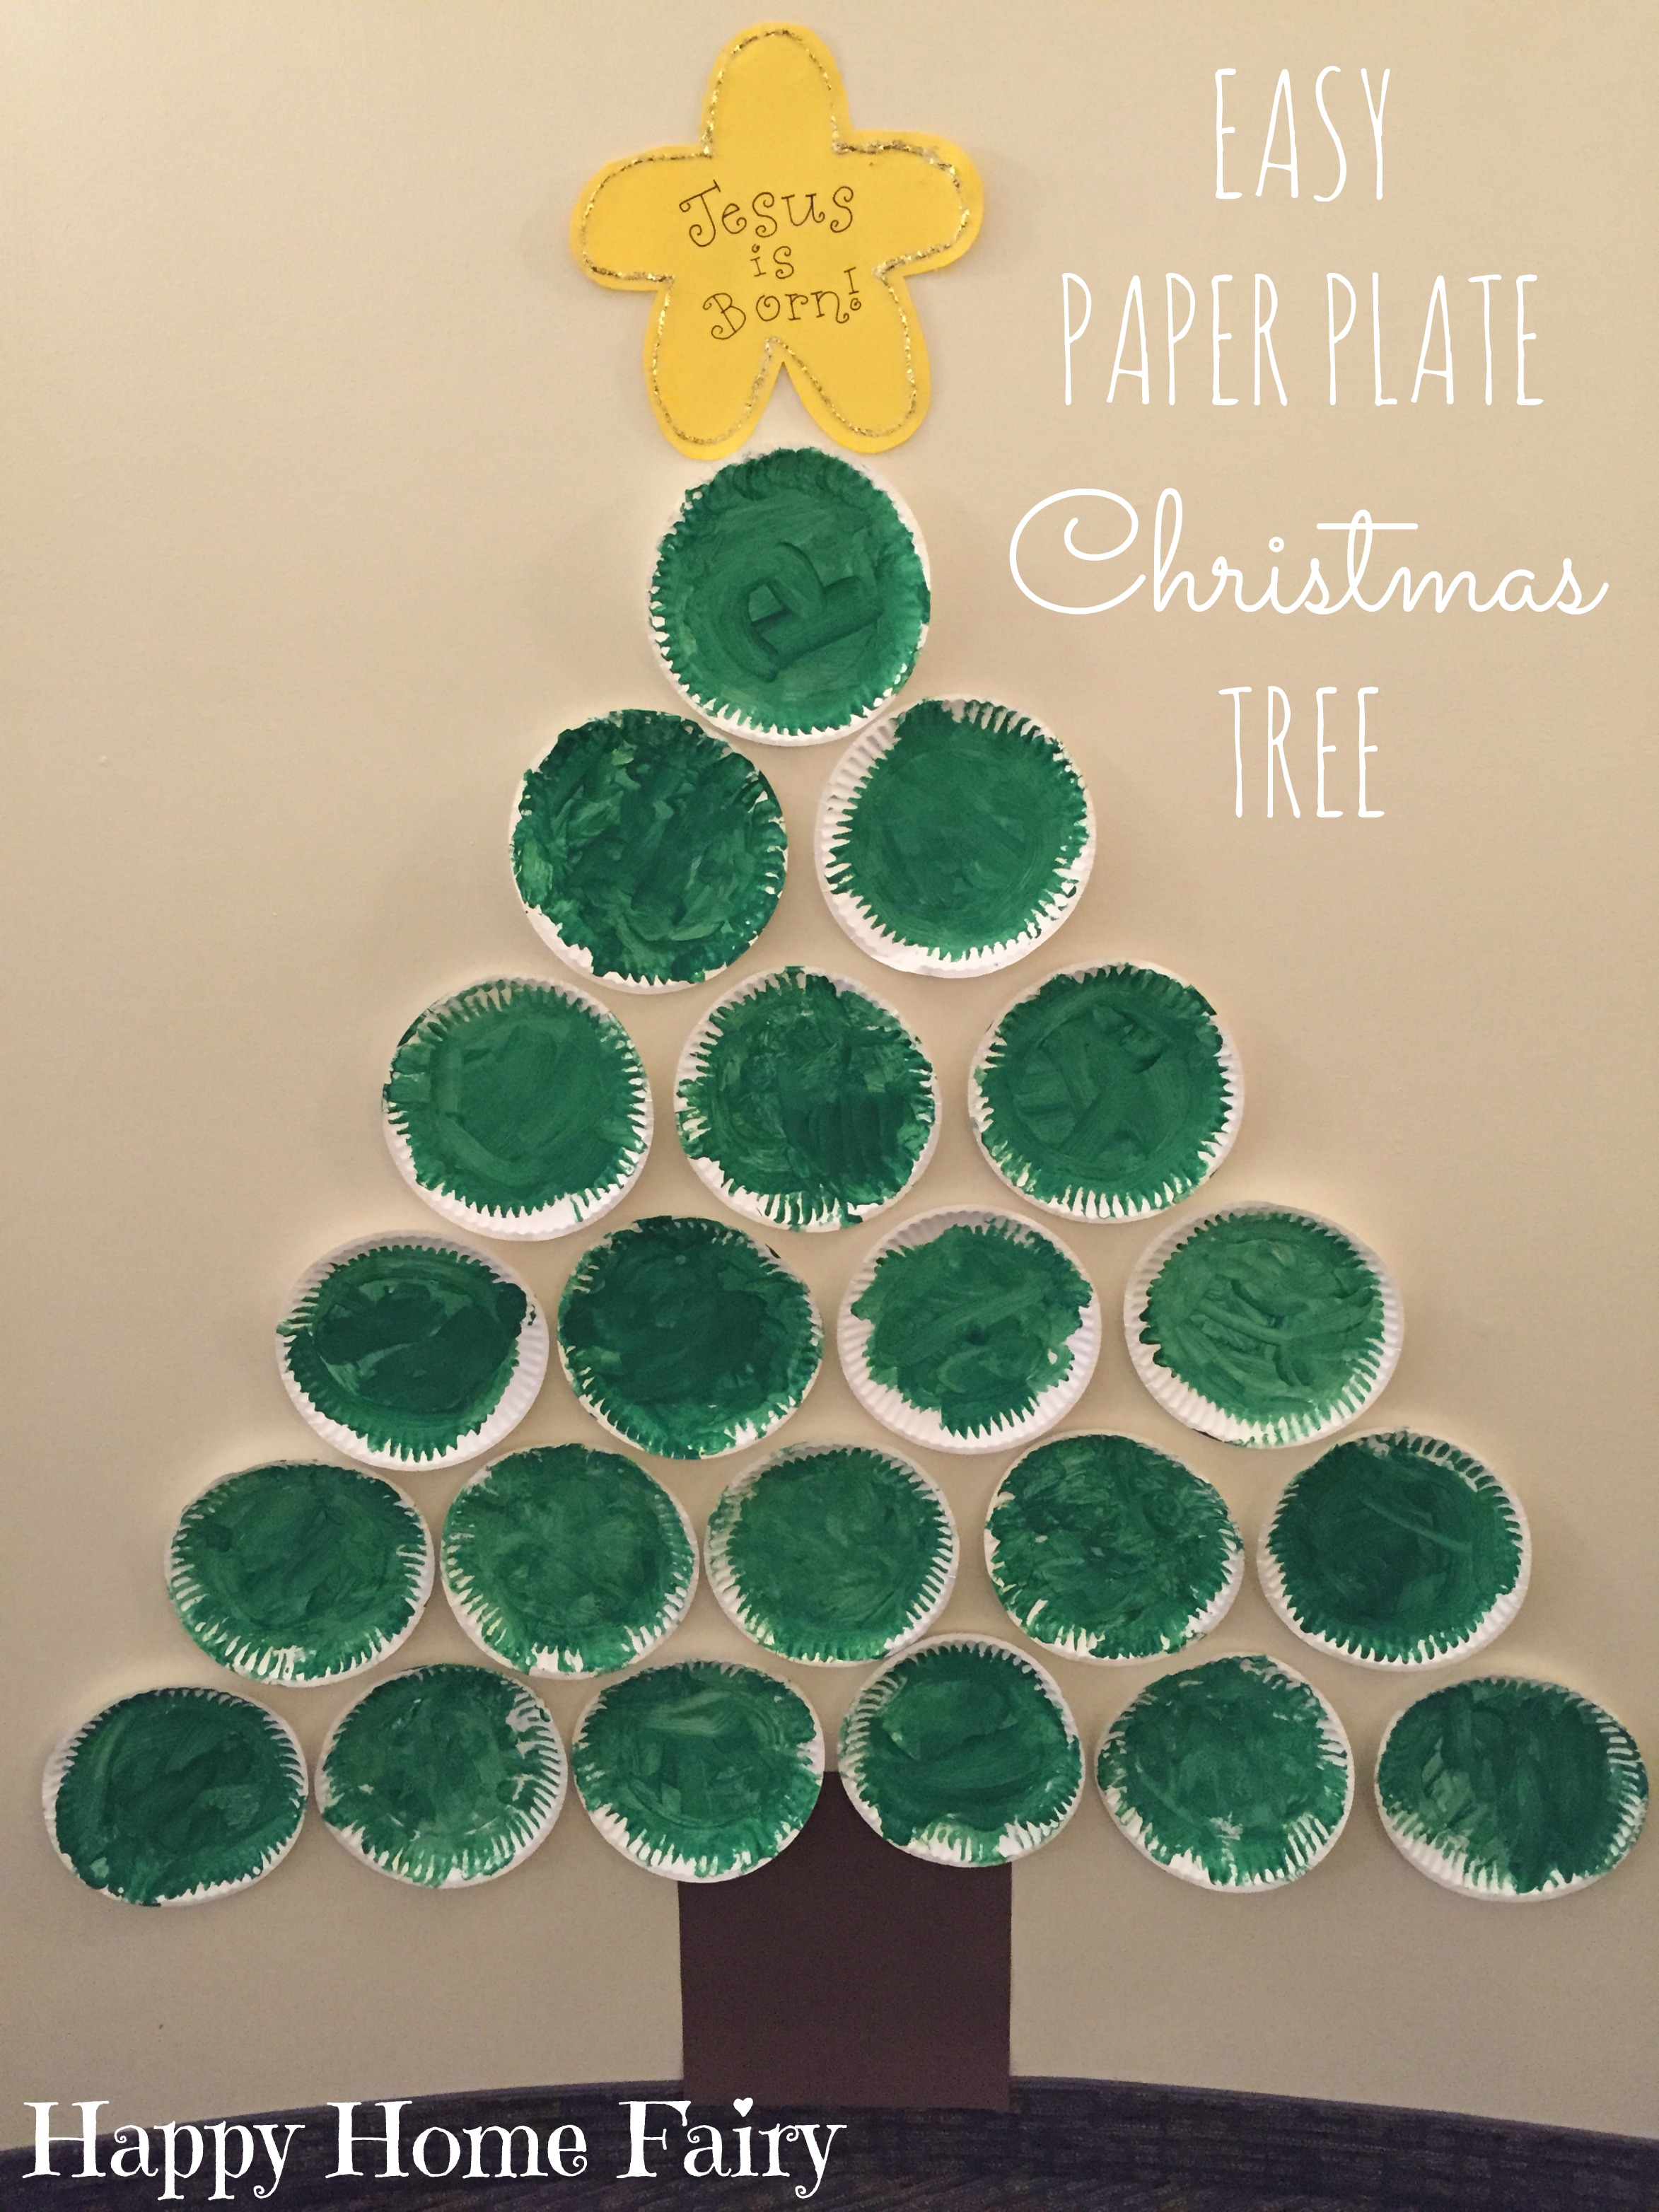 Paper Plate Christmas Tree & Paper Plate Christmas Tree - Happy Home Fairy